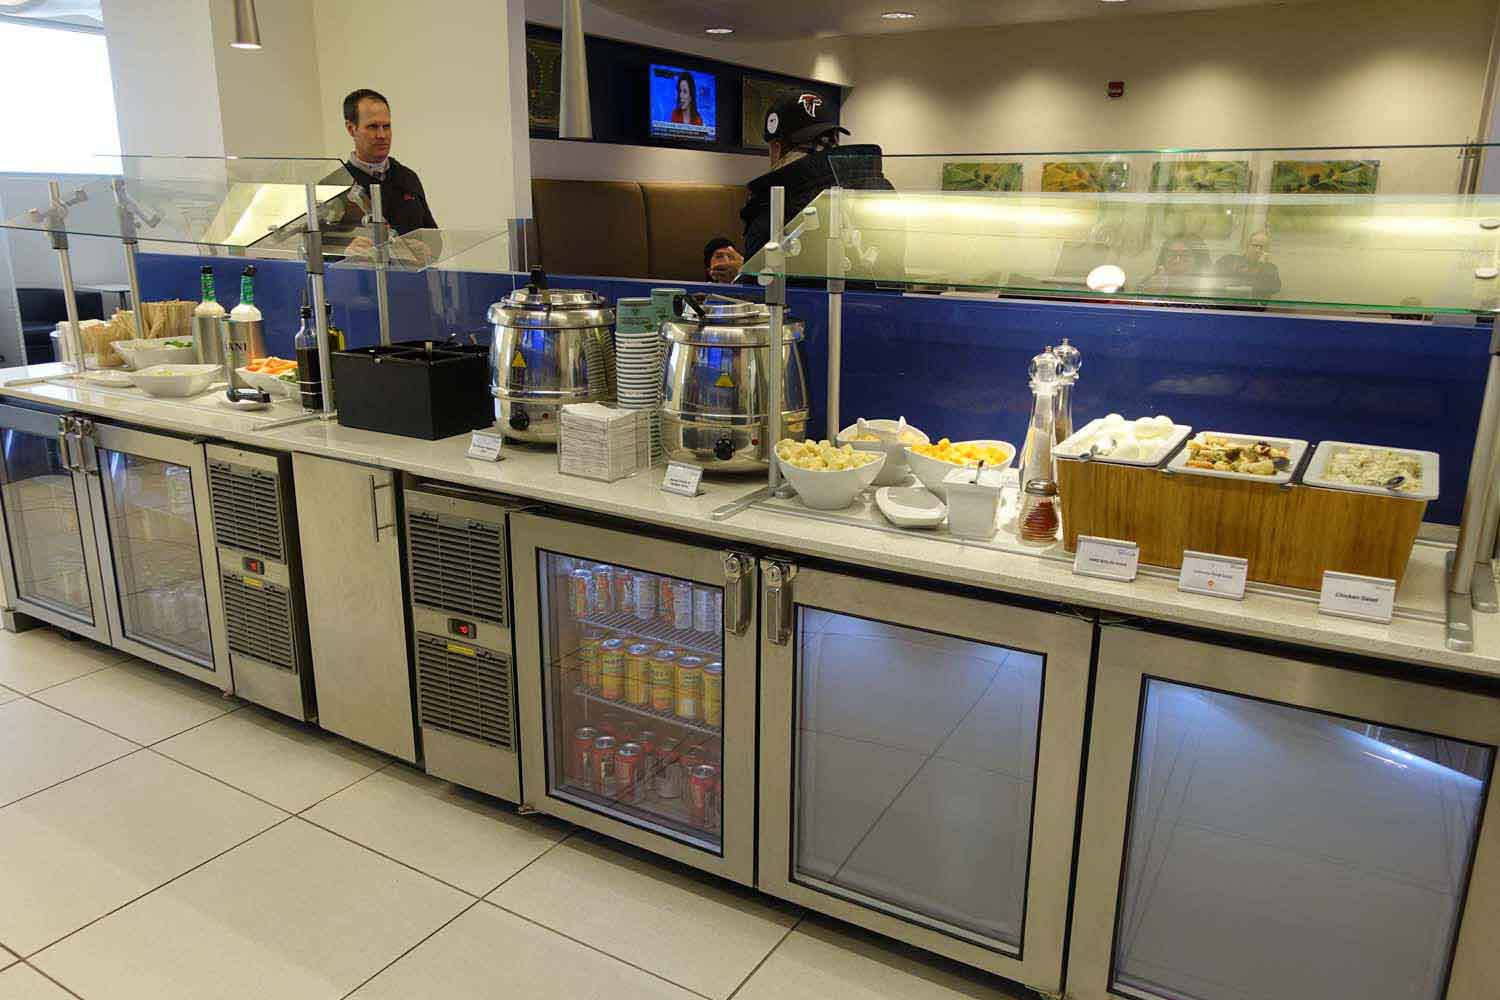 Delta Sky Club at Philadelphia Airport - food and drink bar